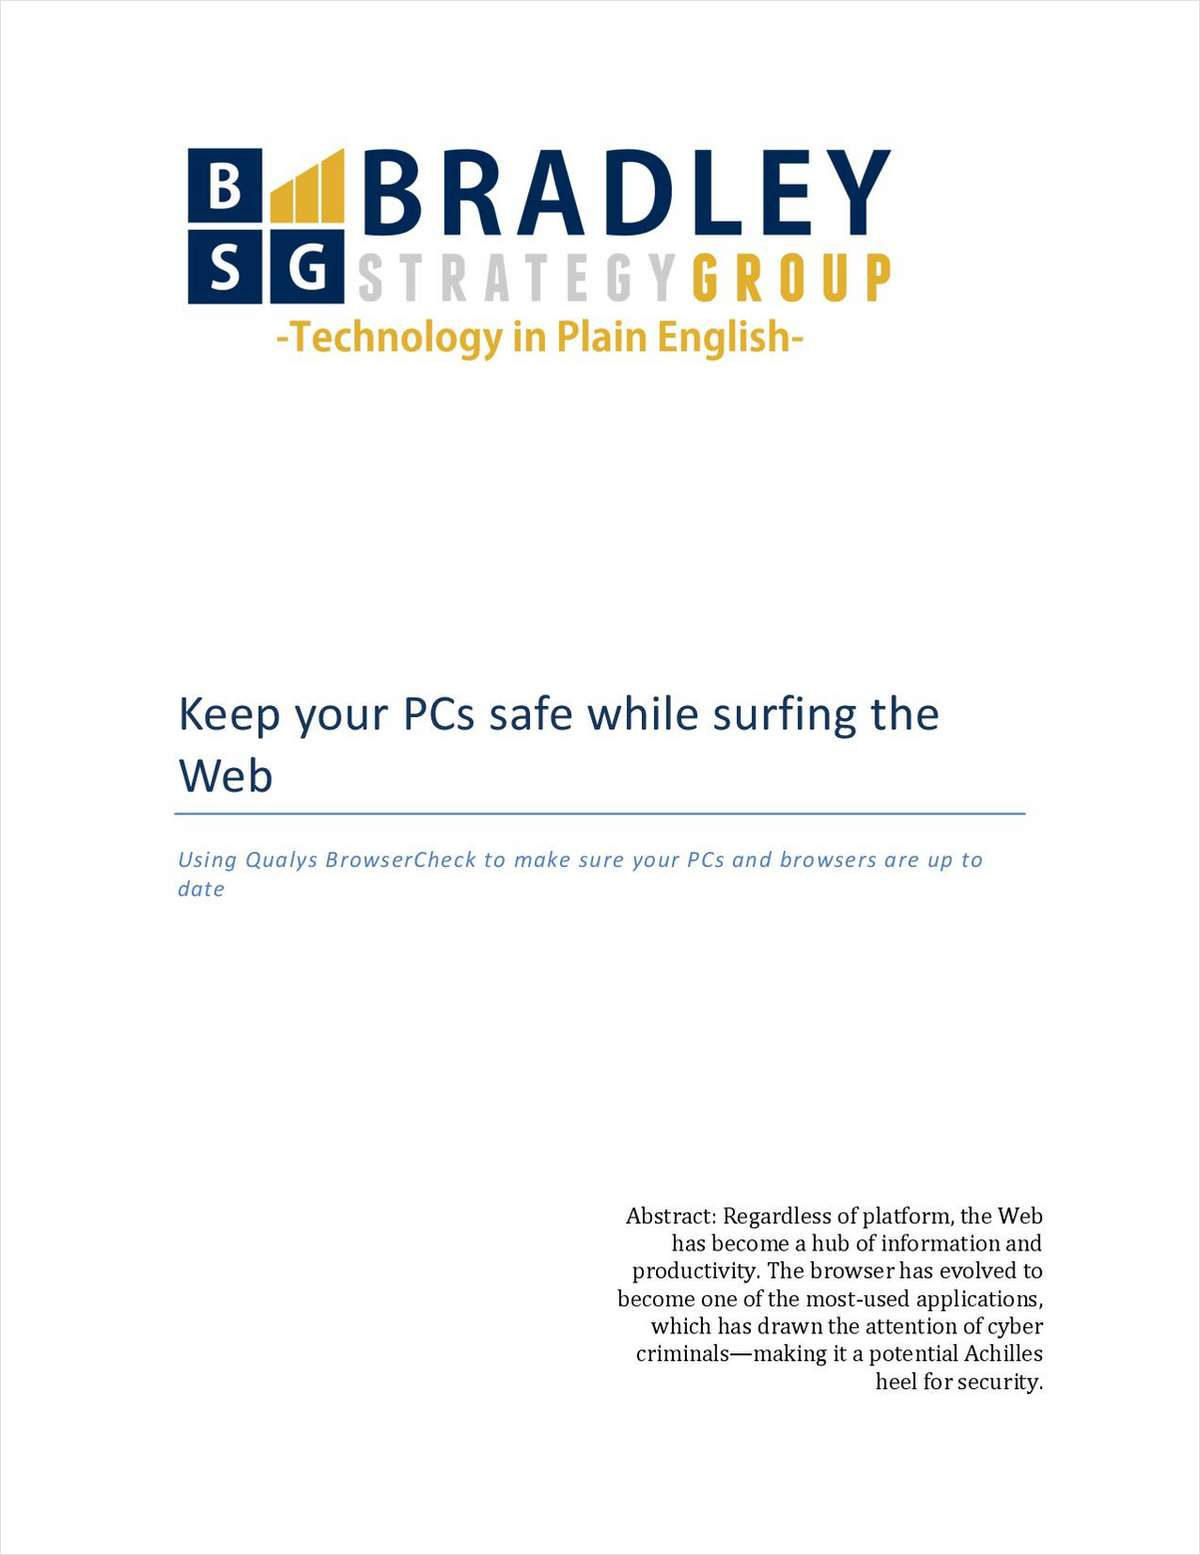 Keep Your PCs Safe while Surfing the Web